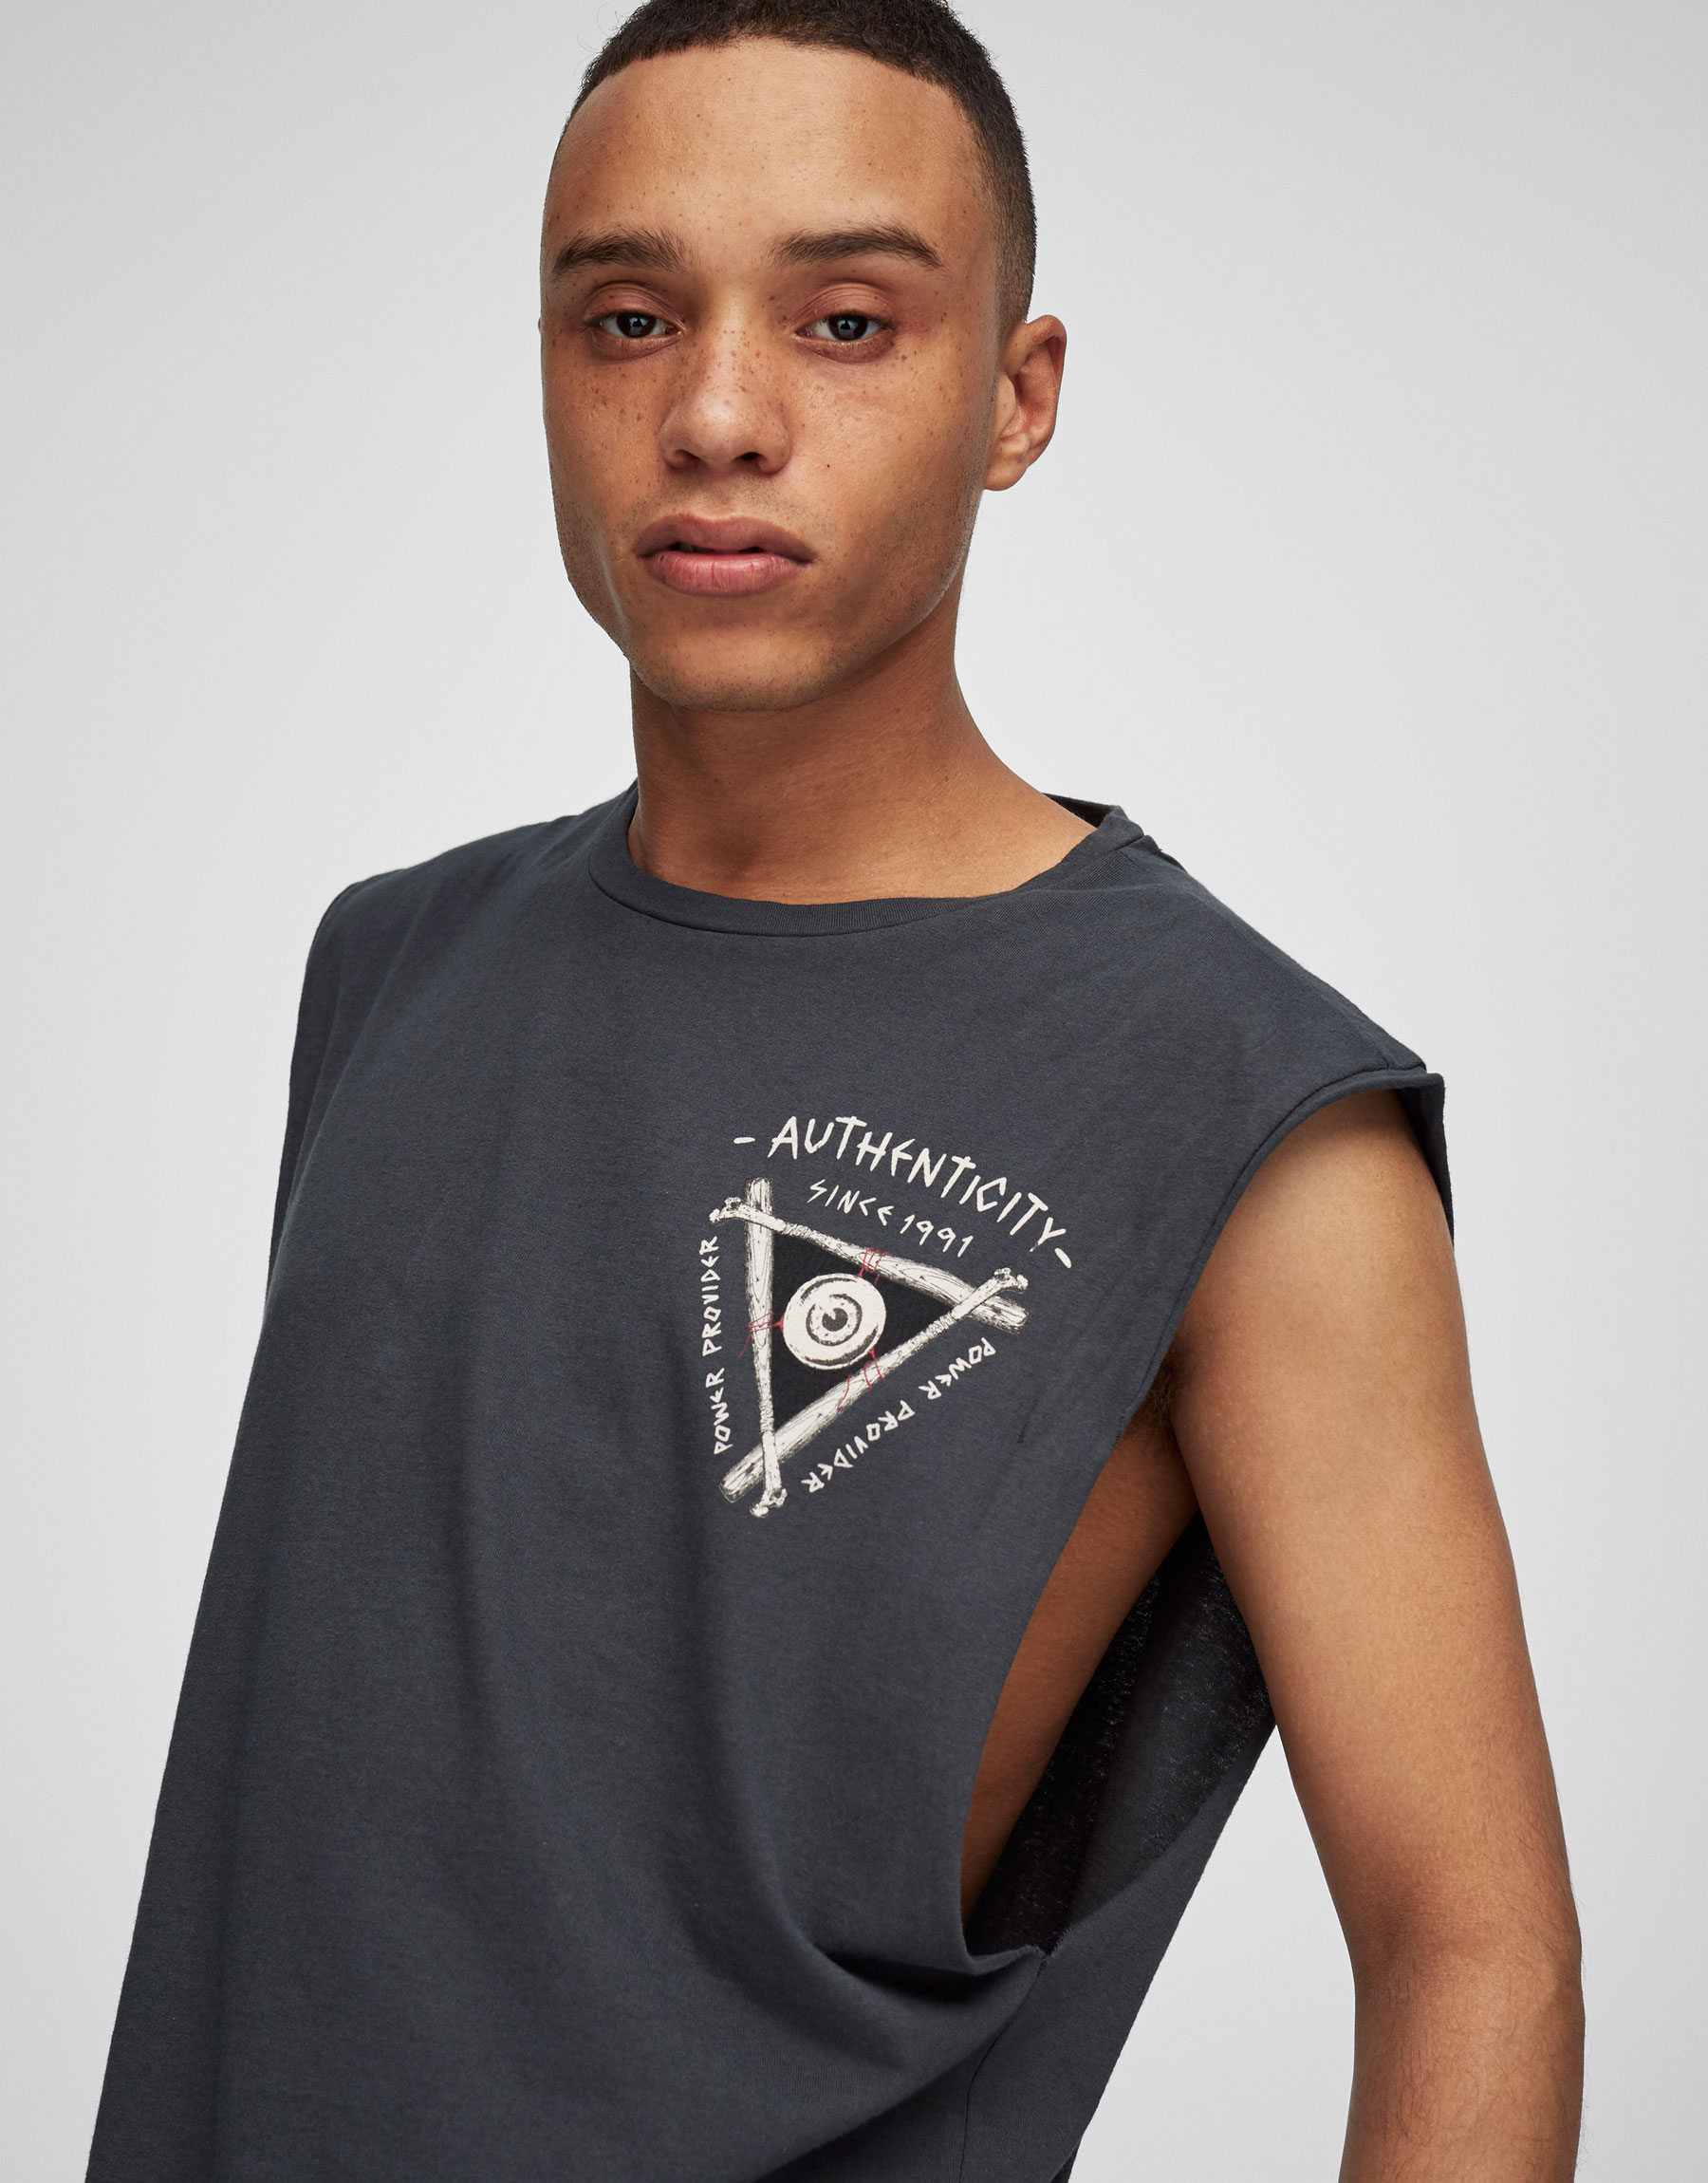 Sleeveless darkmental t-shirt